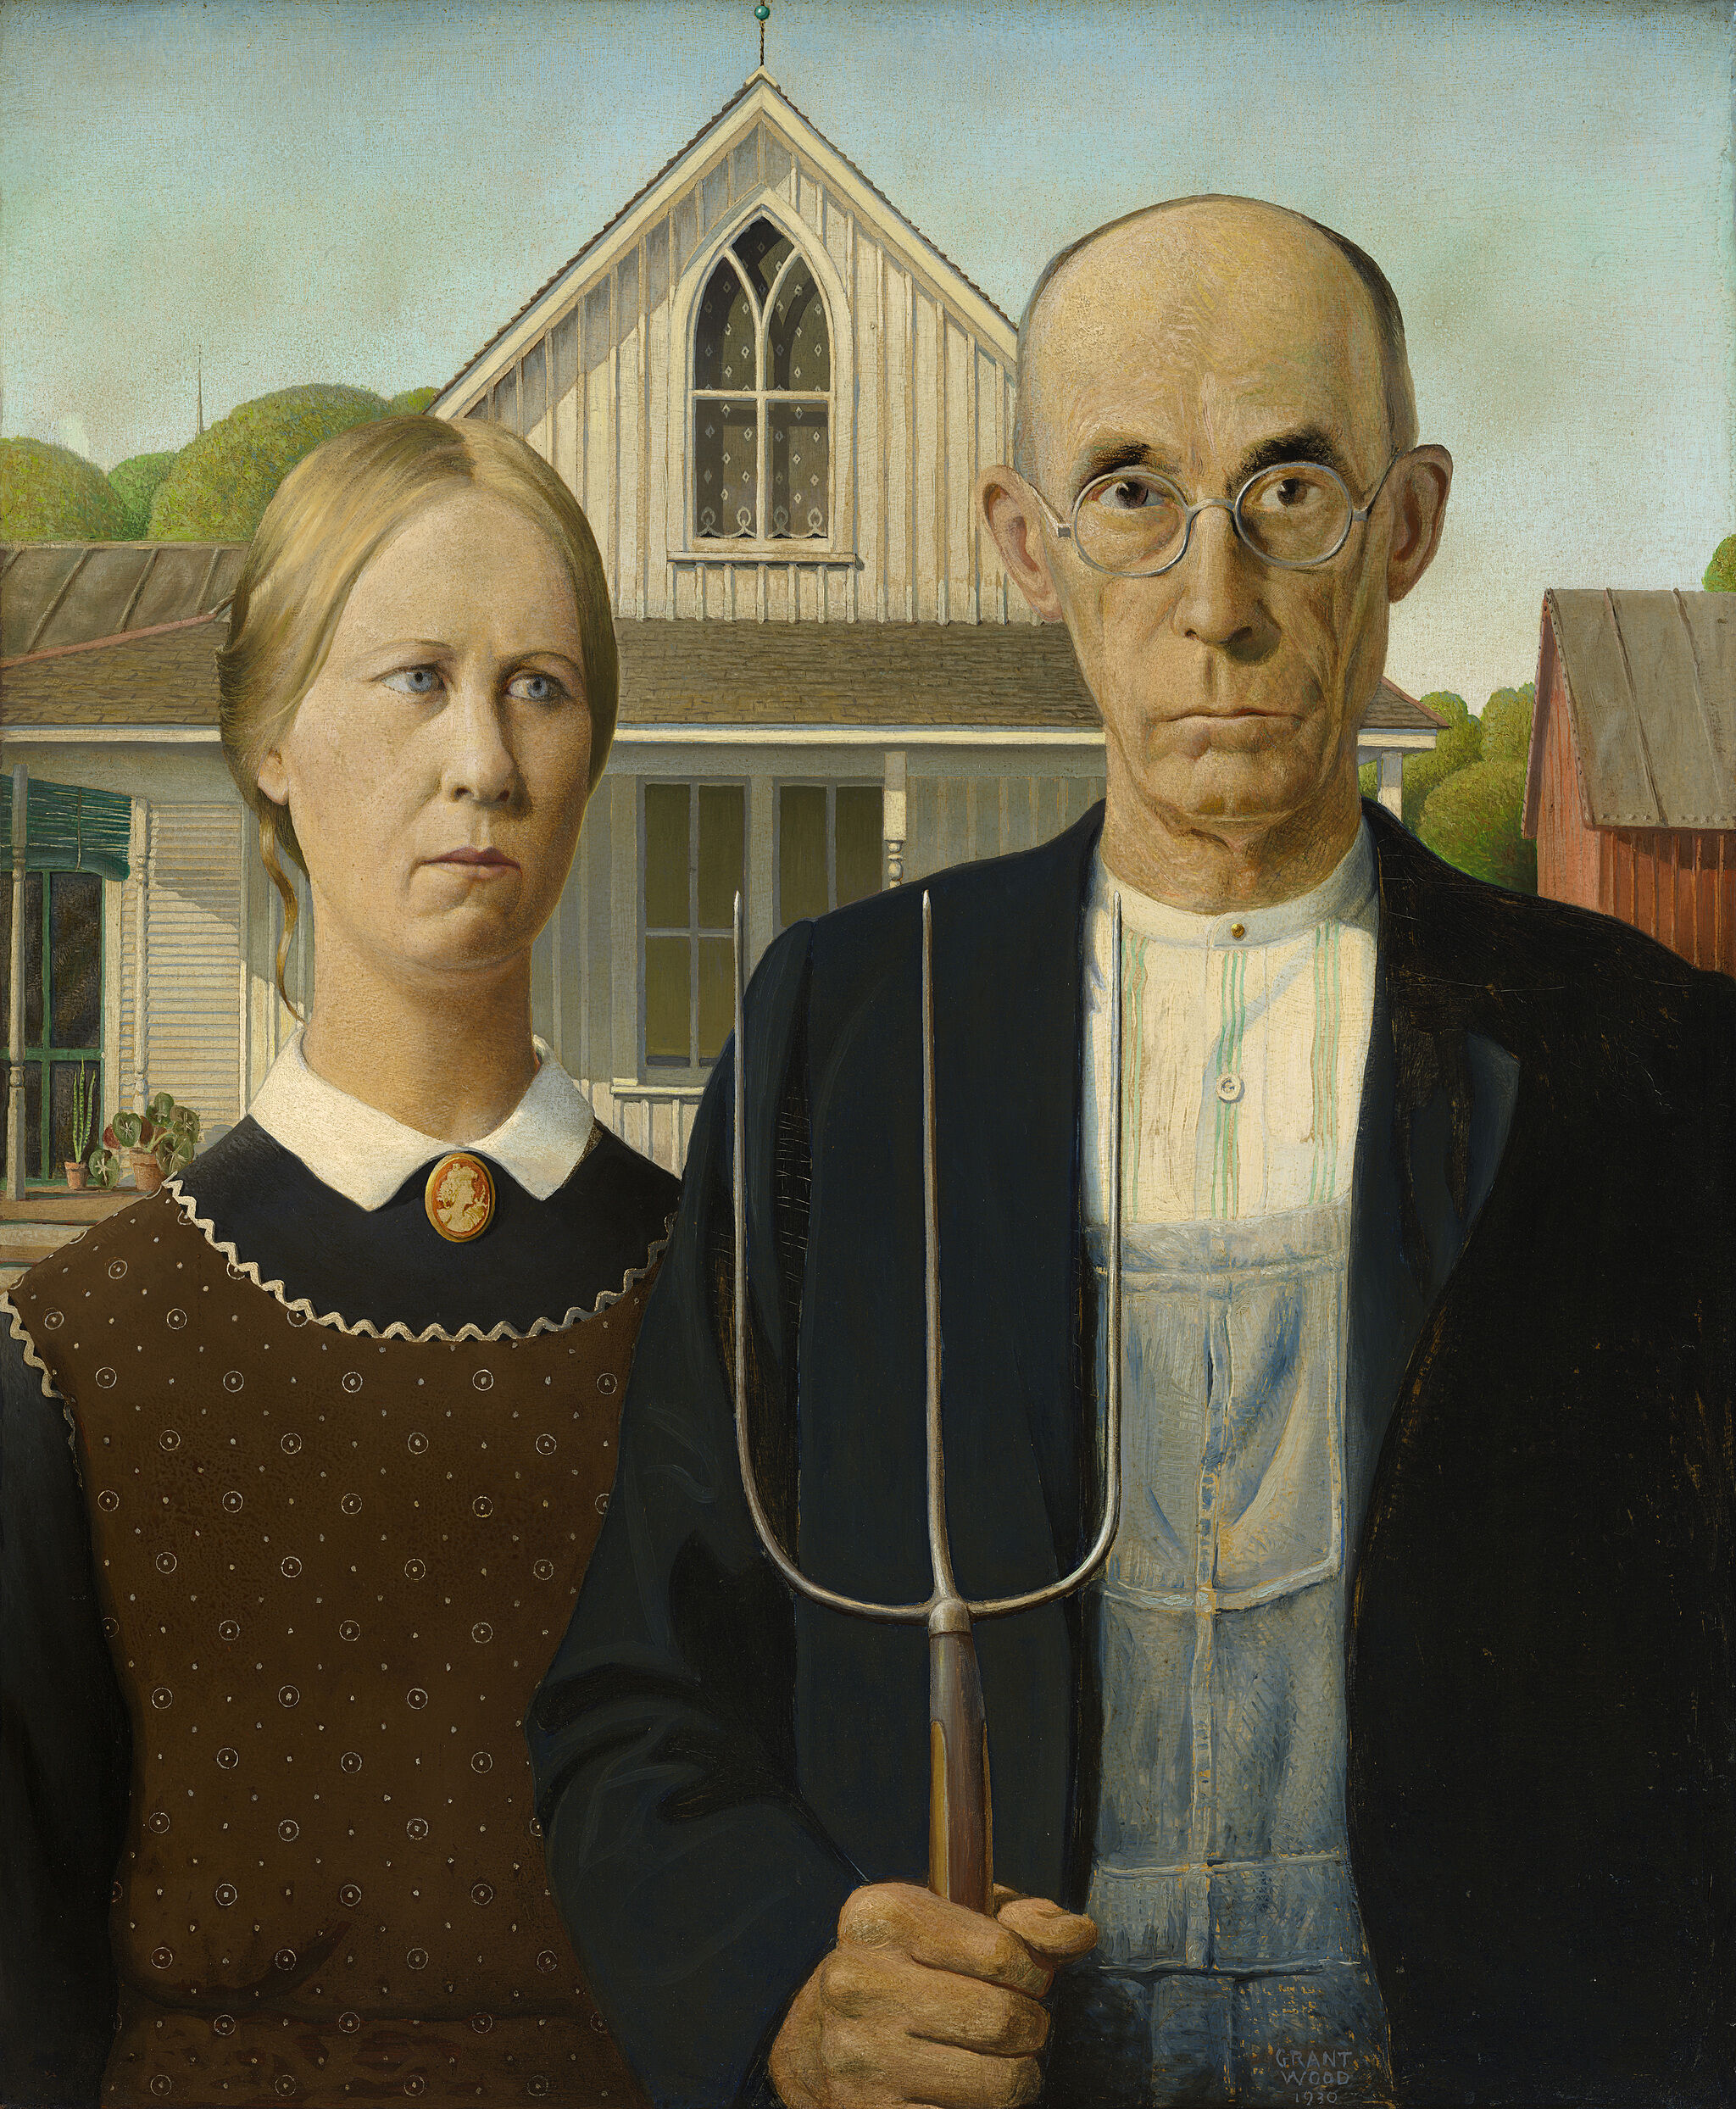 Painting of man holding a pitch fork and a woman in front of a house.